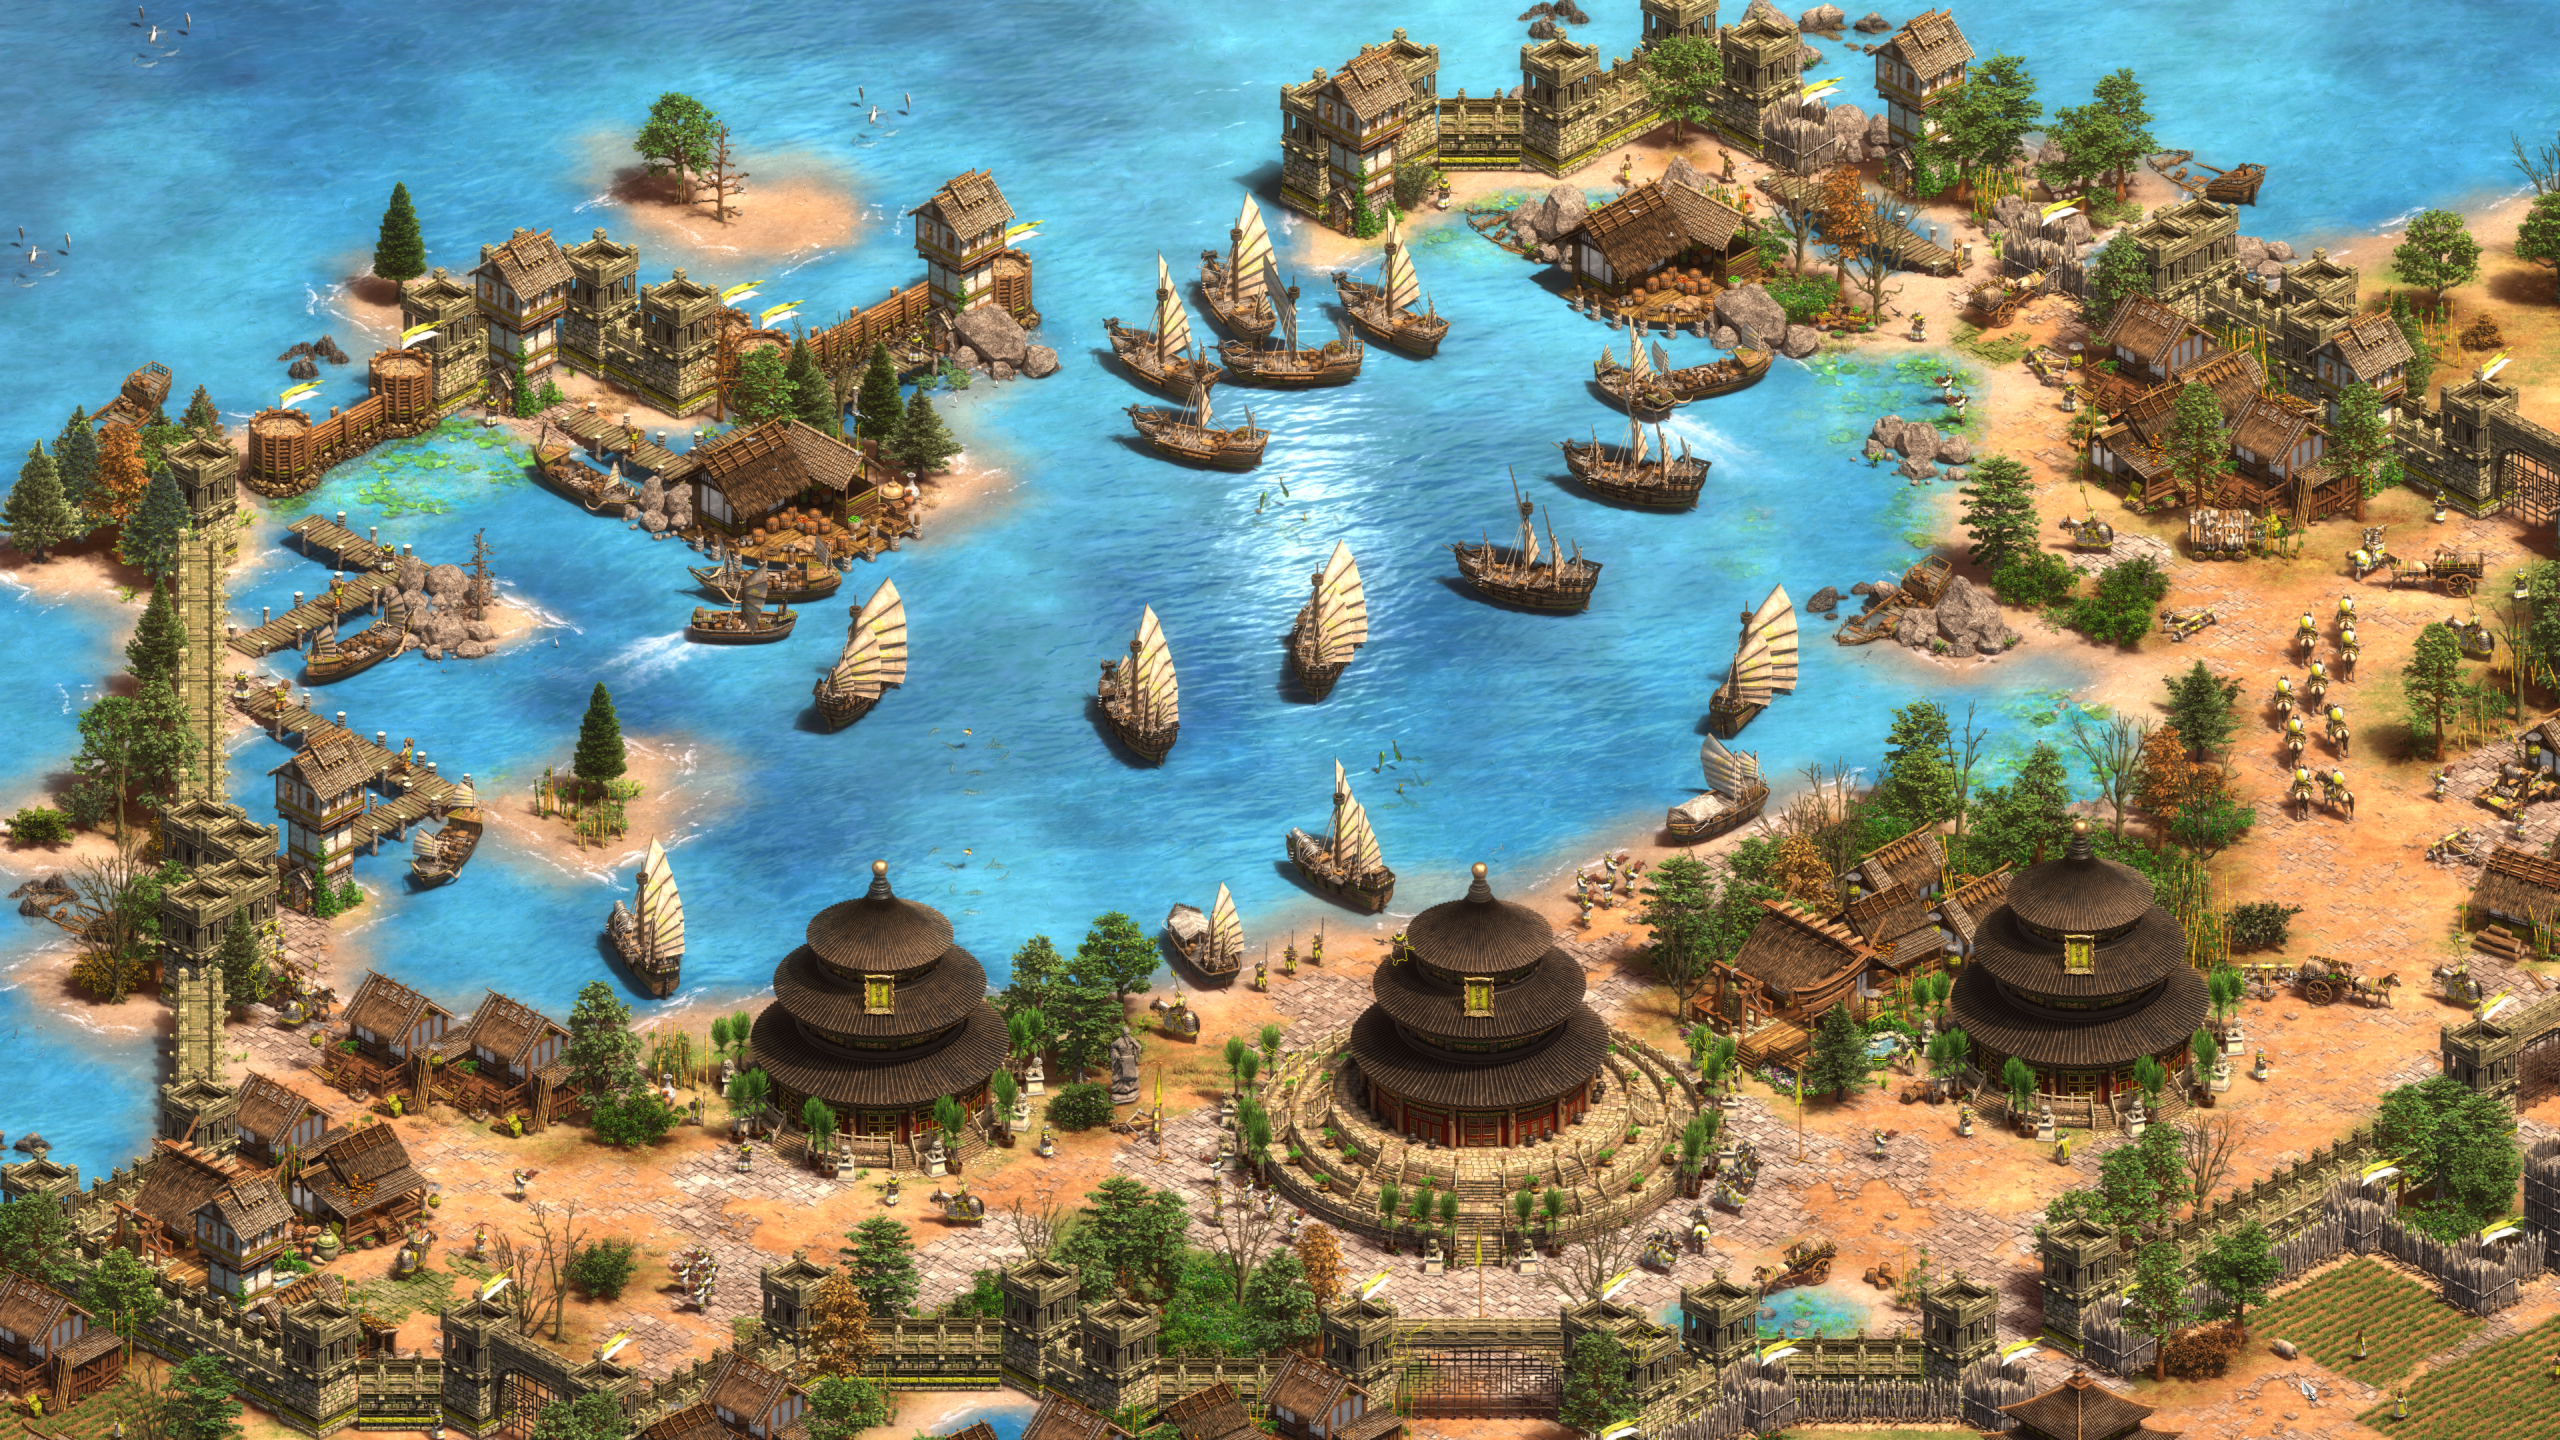 Chinese in Age of Empires II: Definitive Edition